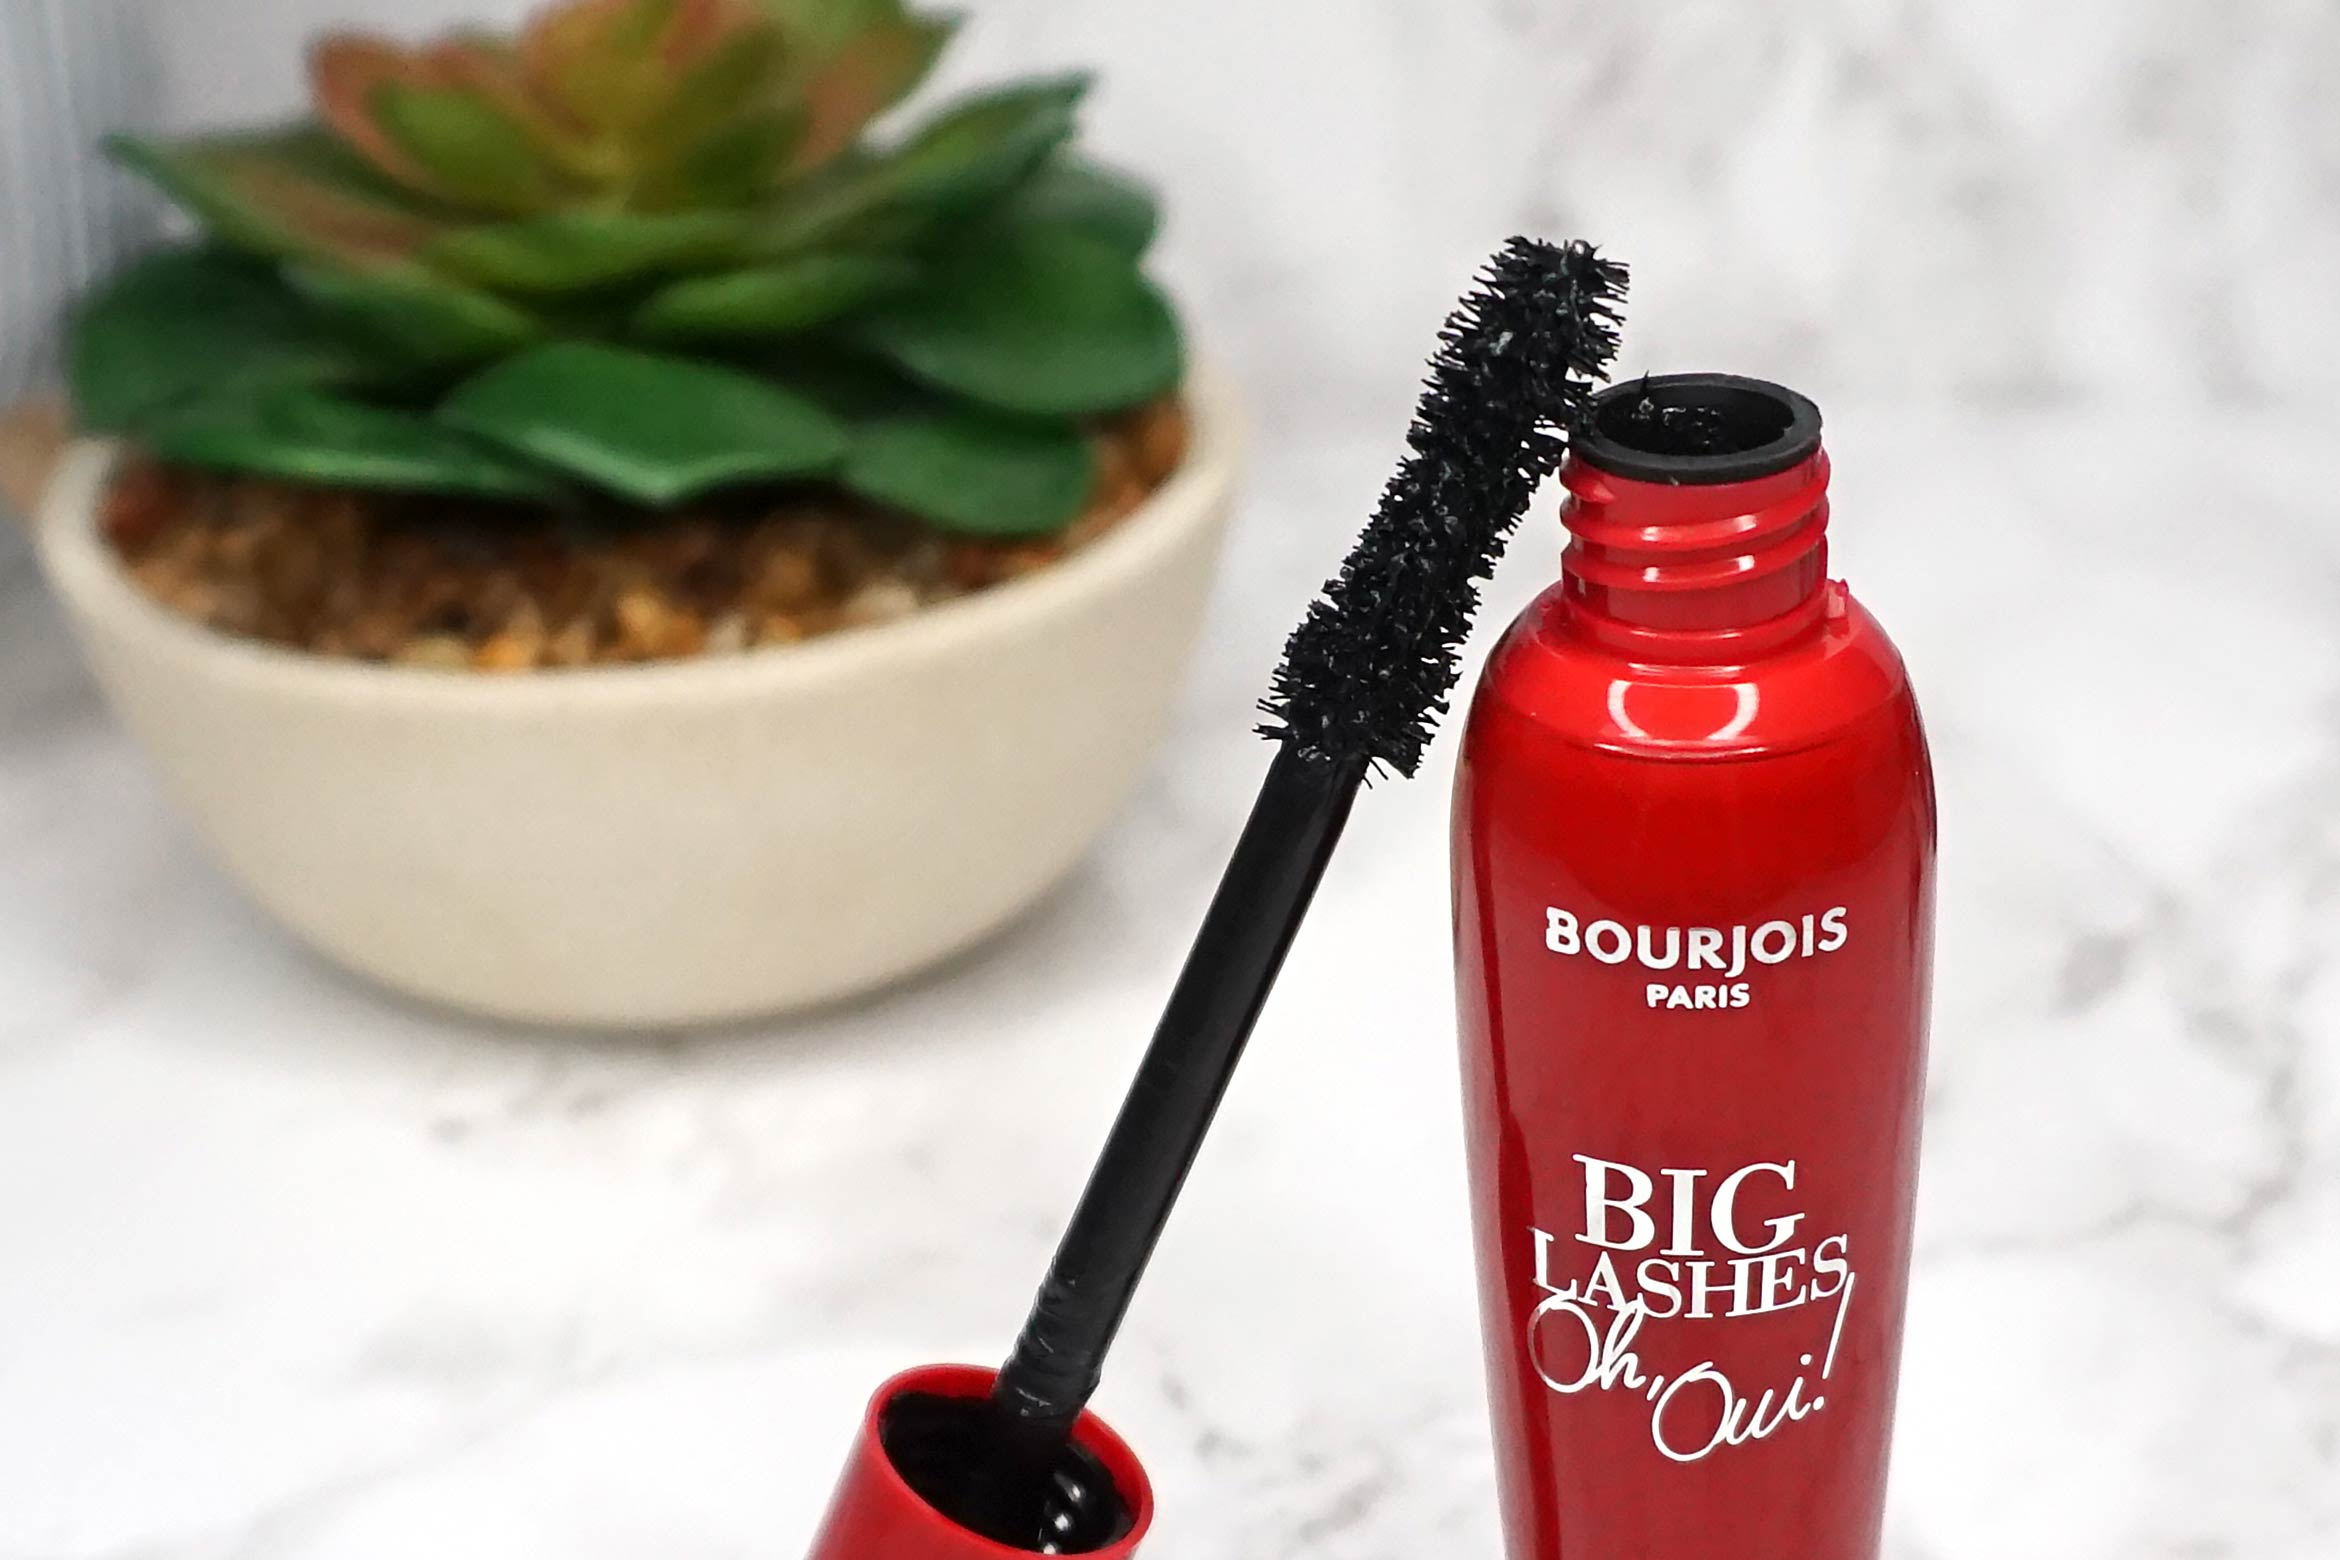 Bourjois-big-lashes-oh-oui-mascara-review-1